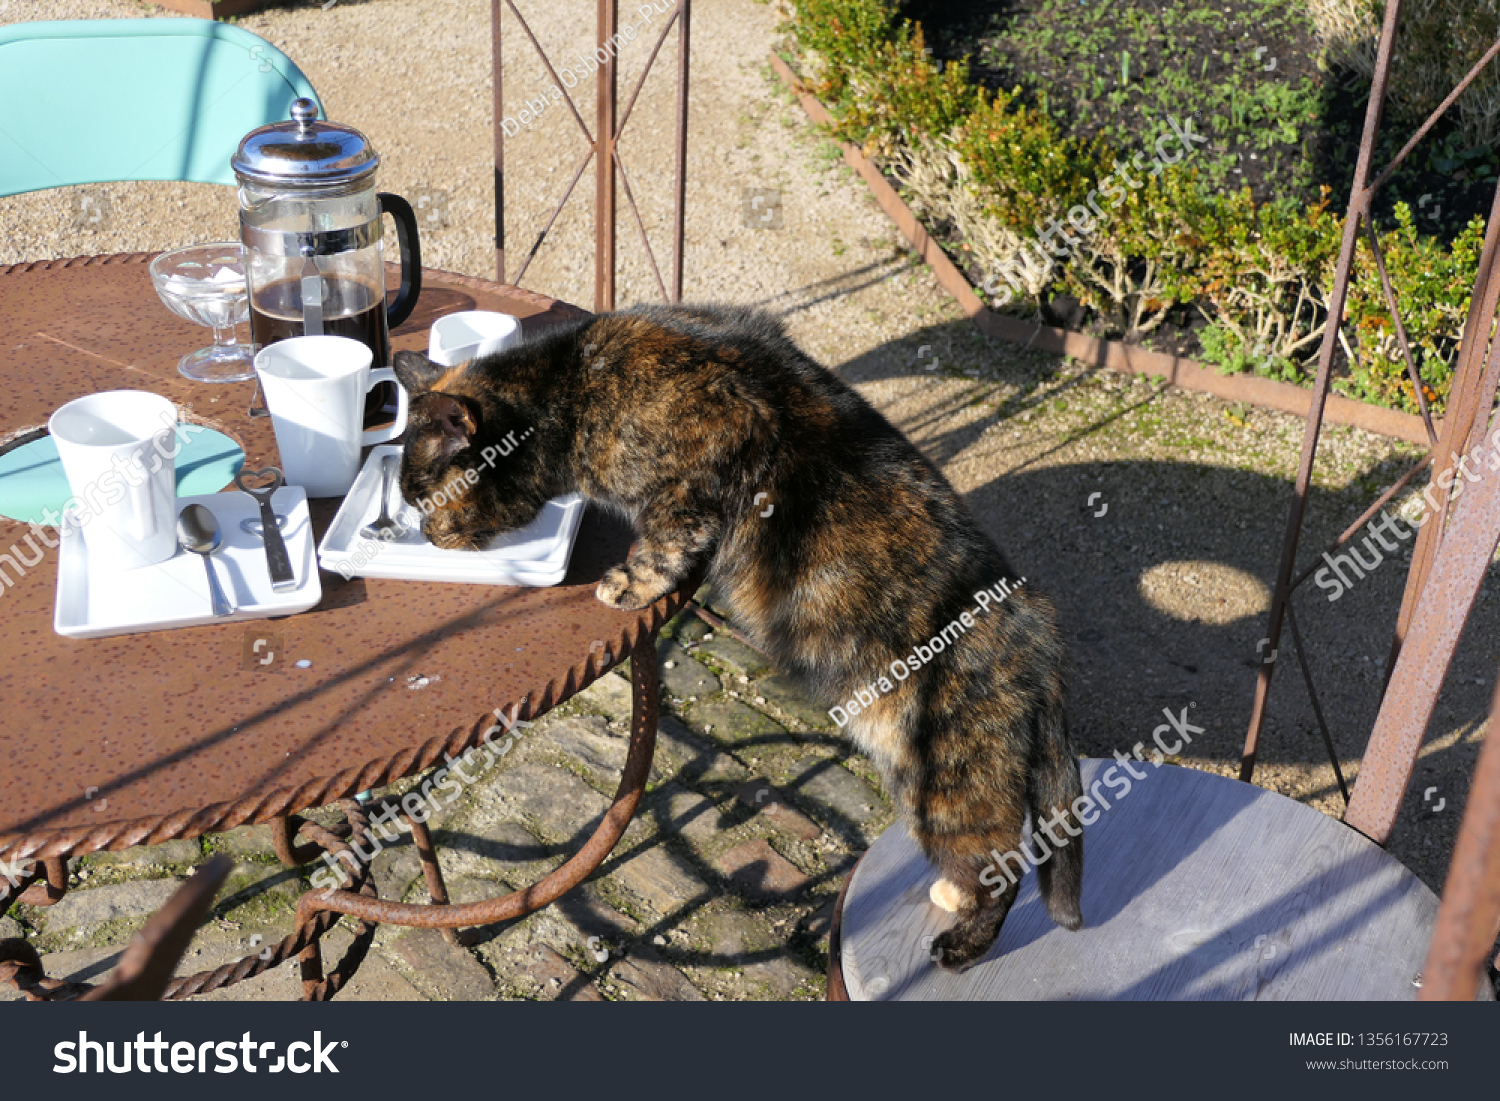 Tortoiseshell cat standing on chair licking cream from plate on outdoor table